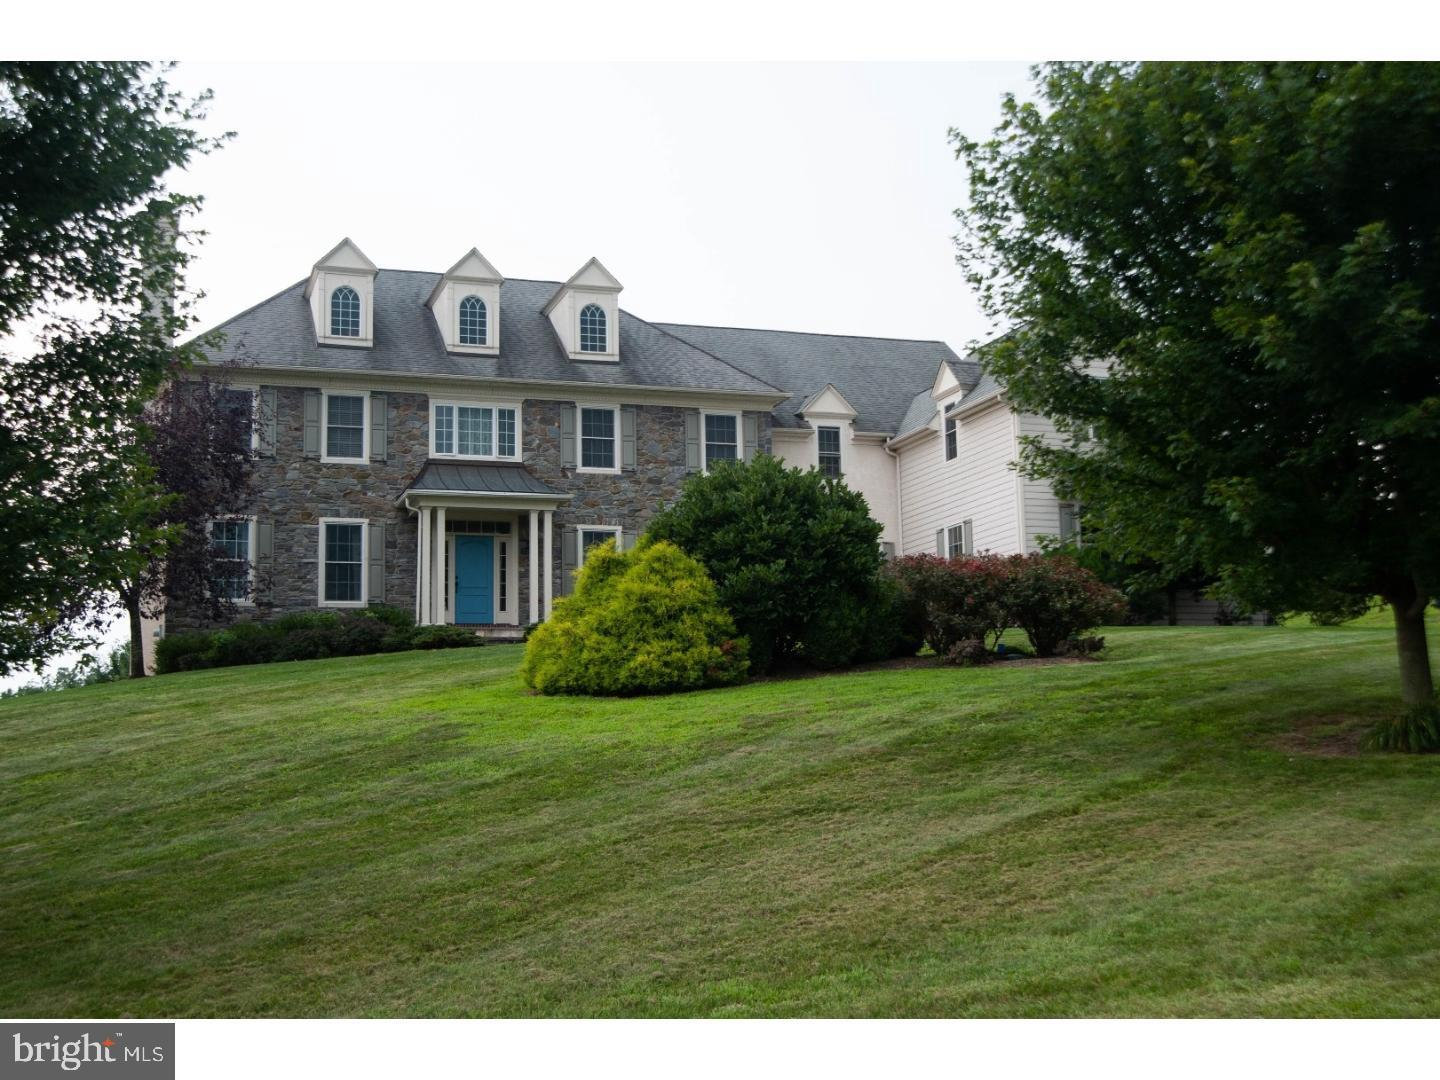 102 WYNDHAM HILL DRIVE, KENNETT SQUARE, PA 19348